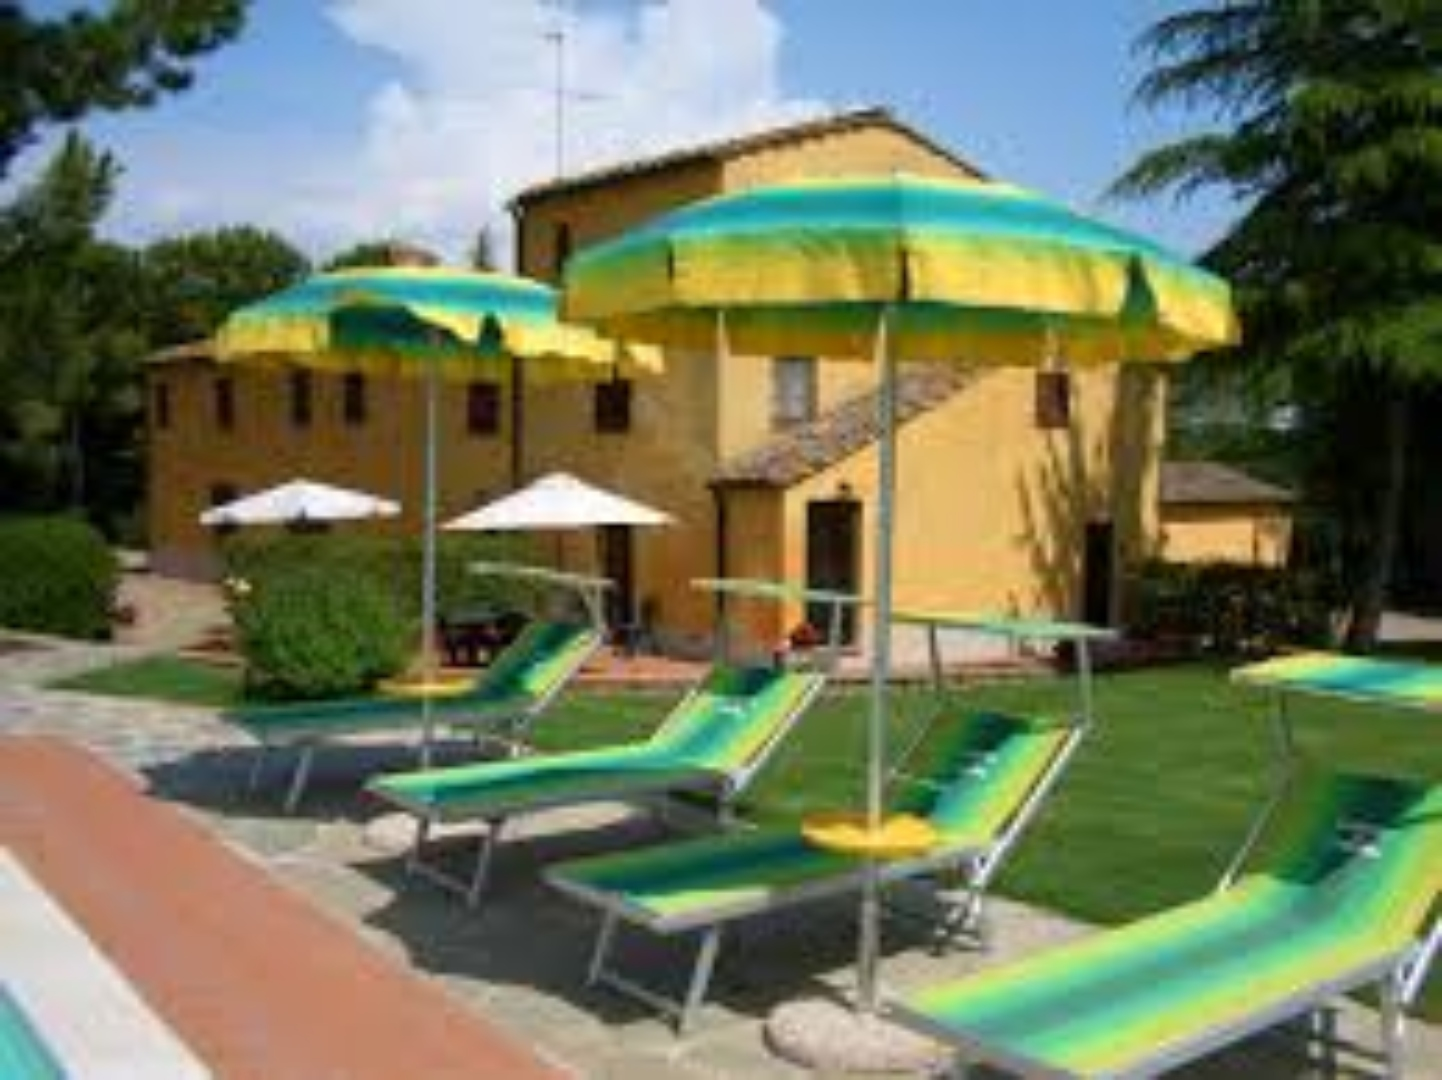 A group of lawn chairs sitting on top of a green umbrella at Casanova di Larniano.